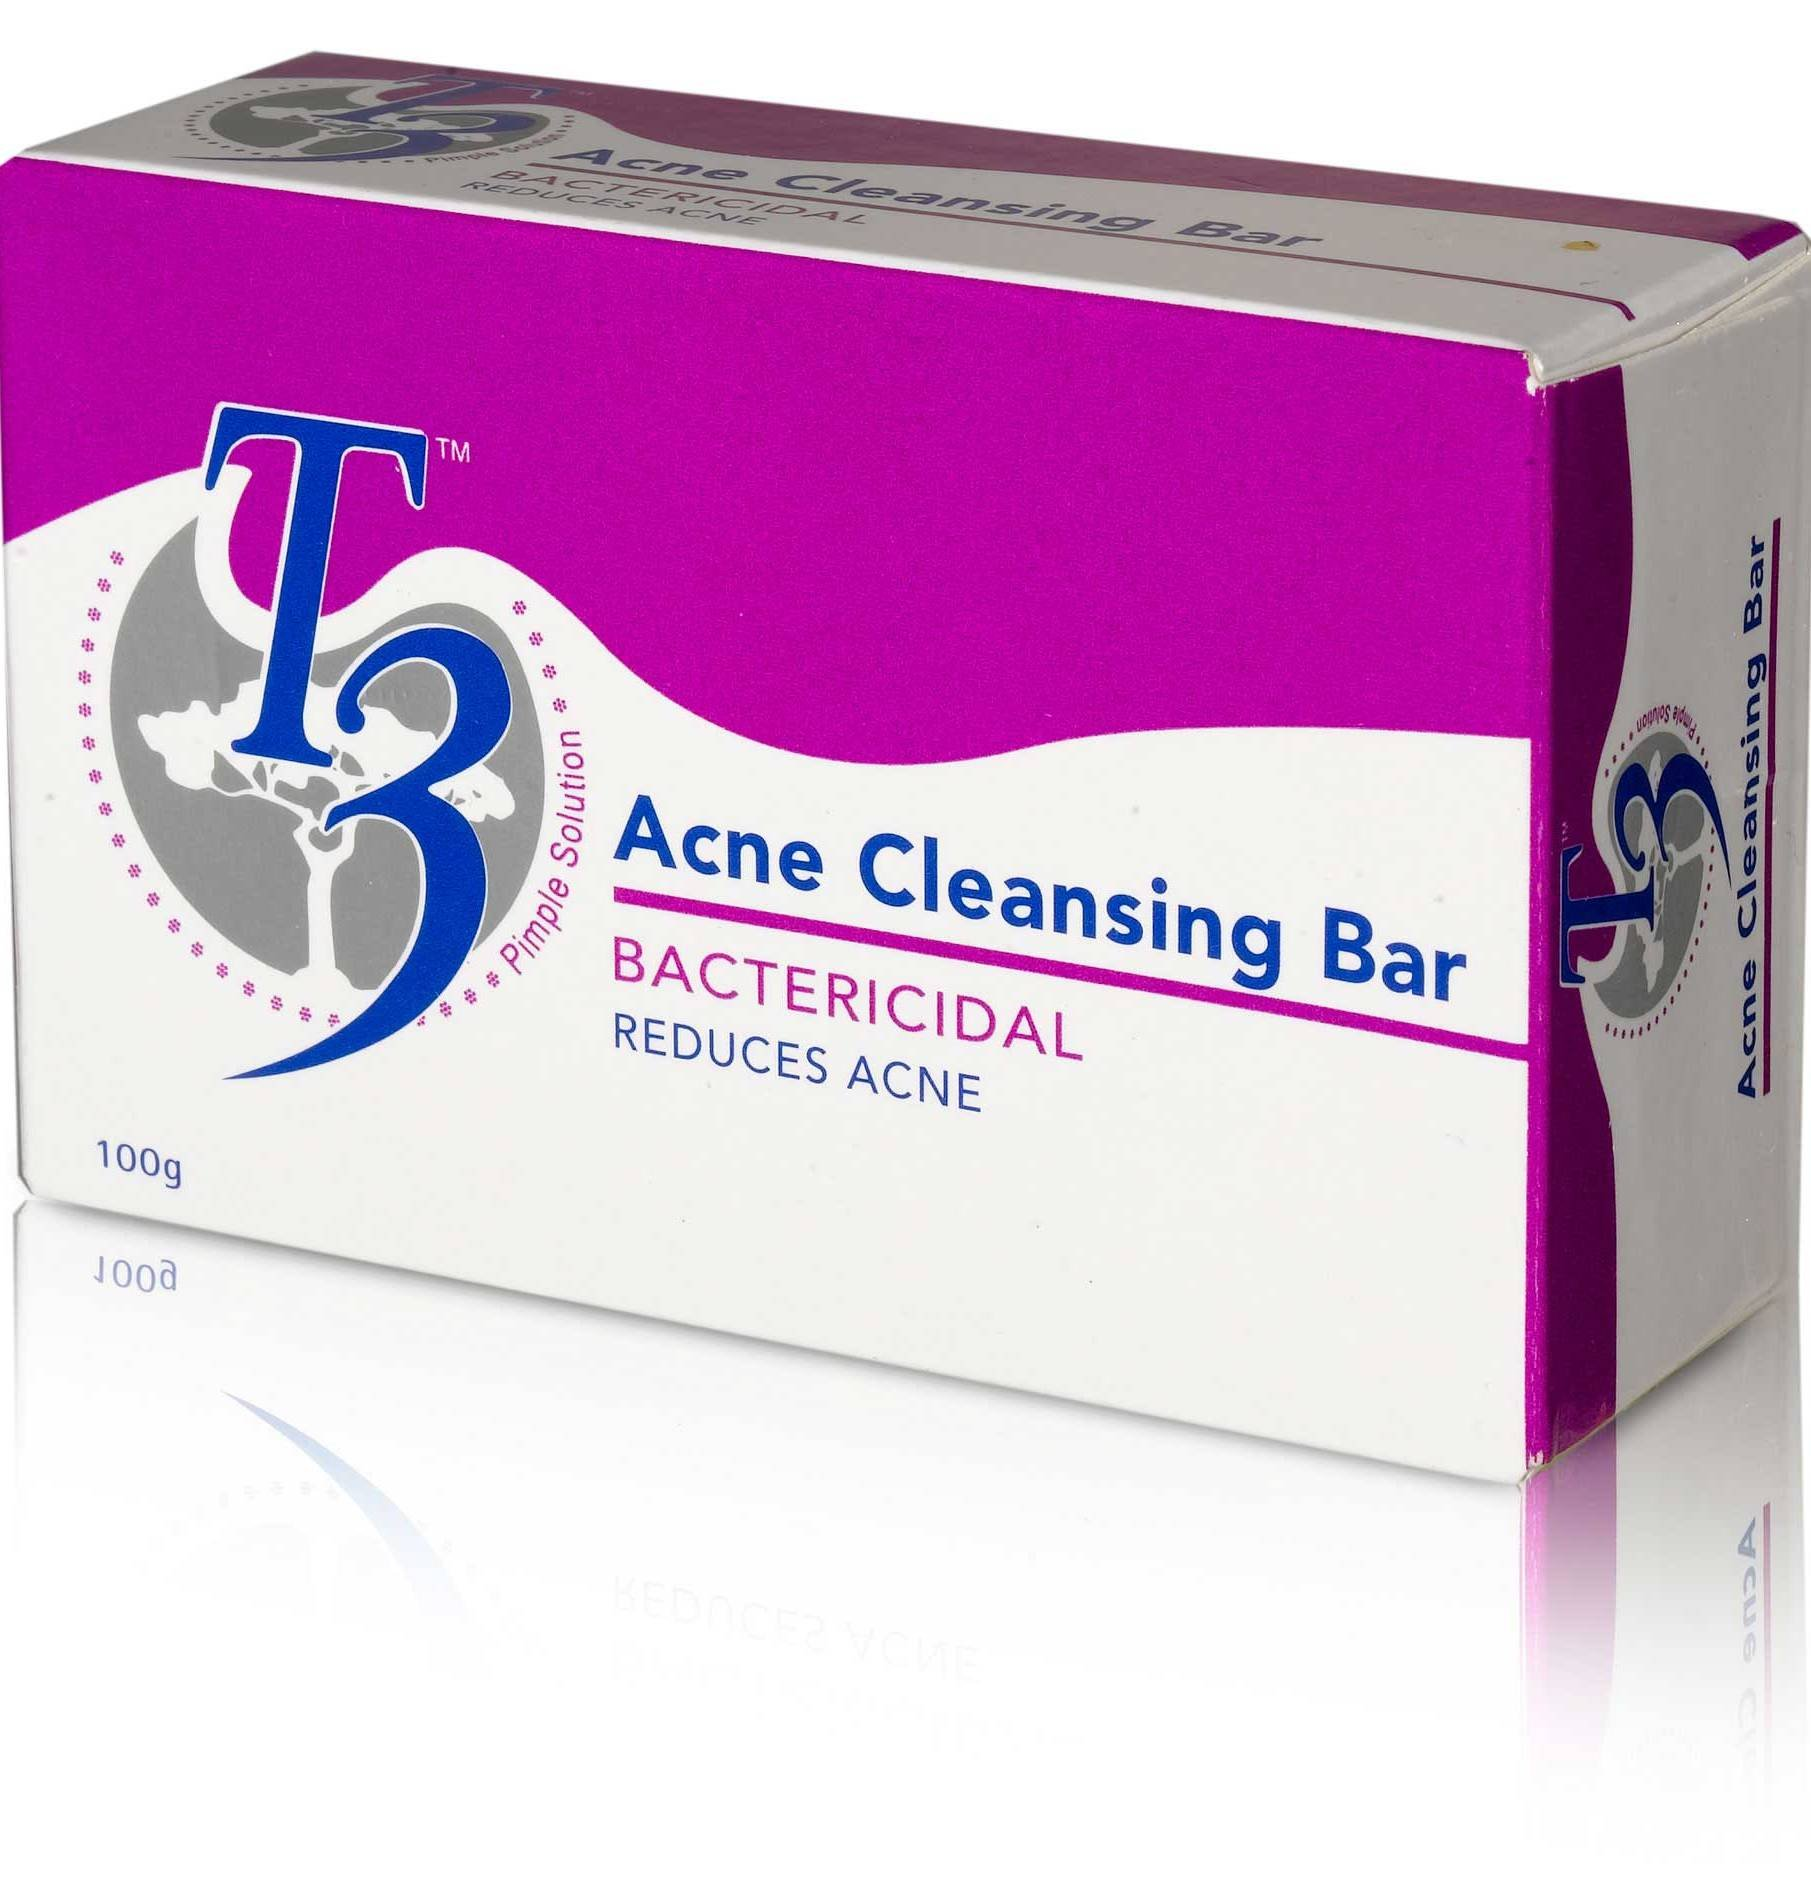 T3 Acne Cleansing Bar 100g Acne Cleansing Bar